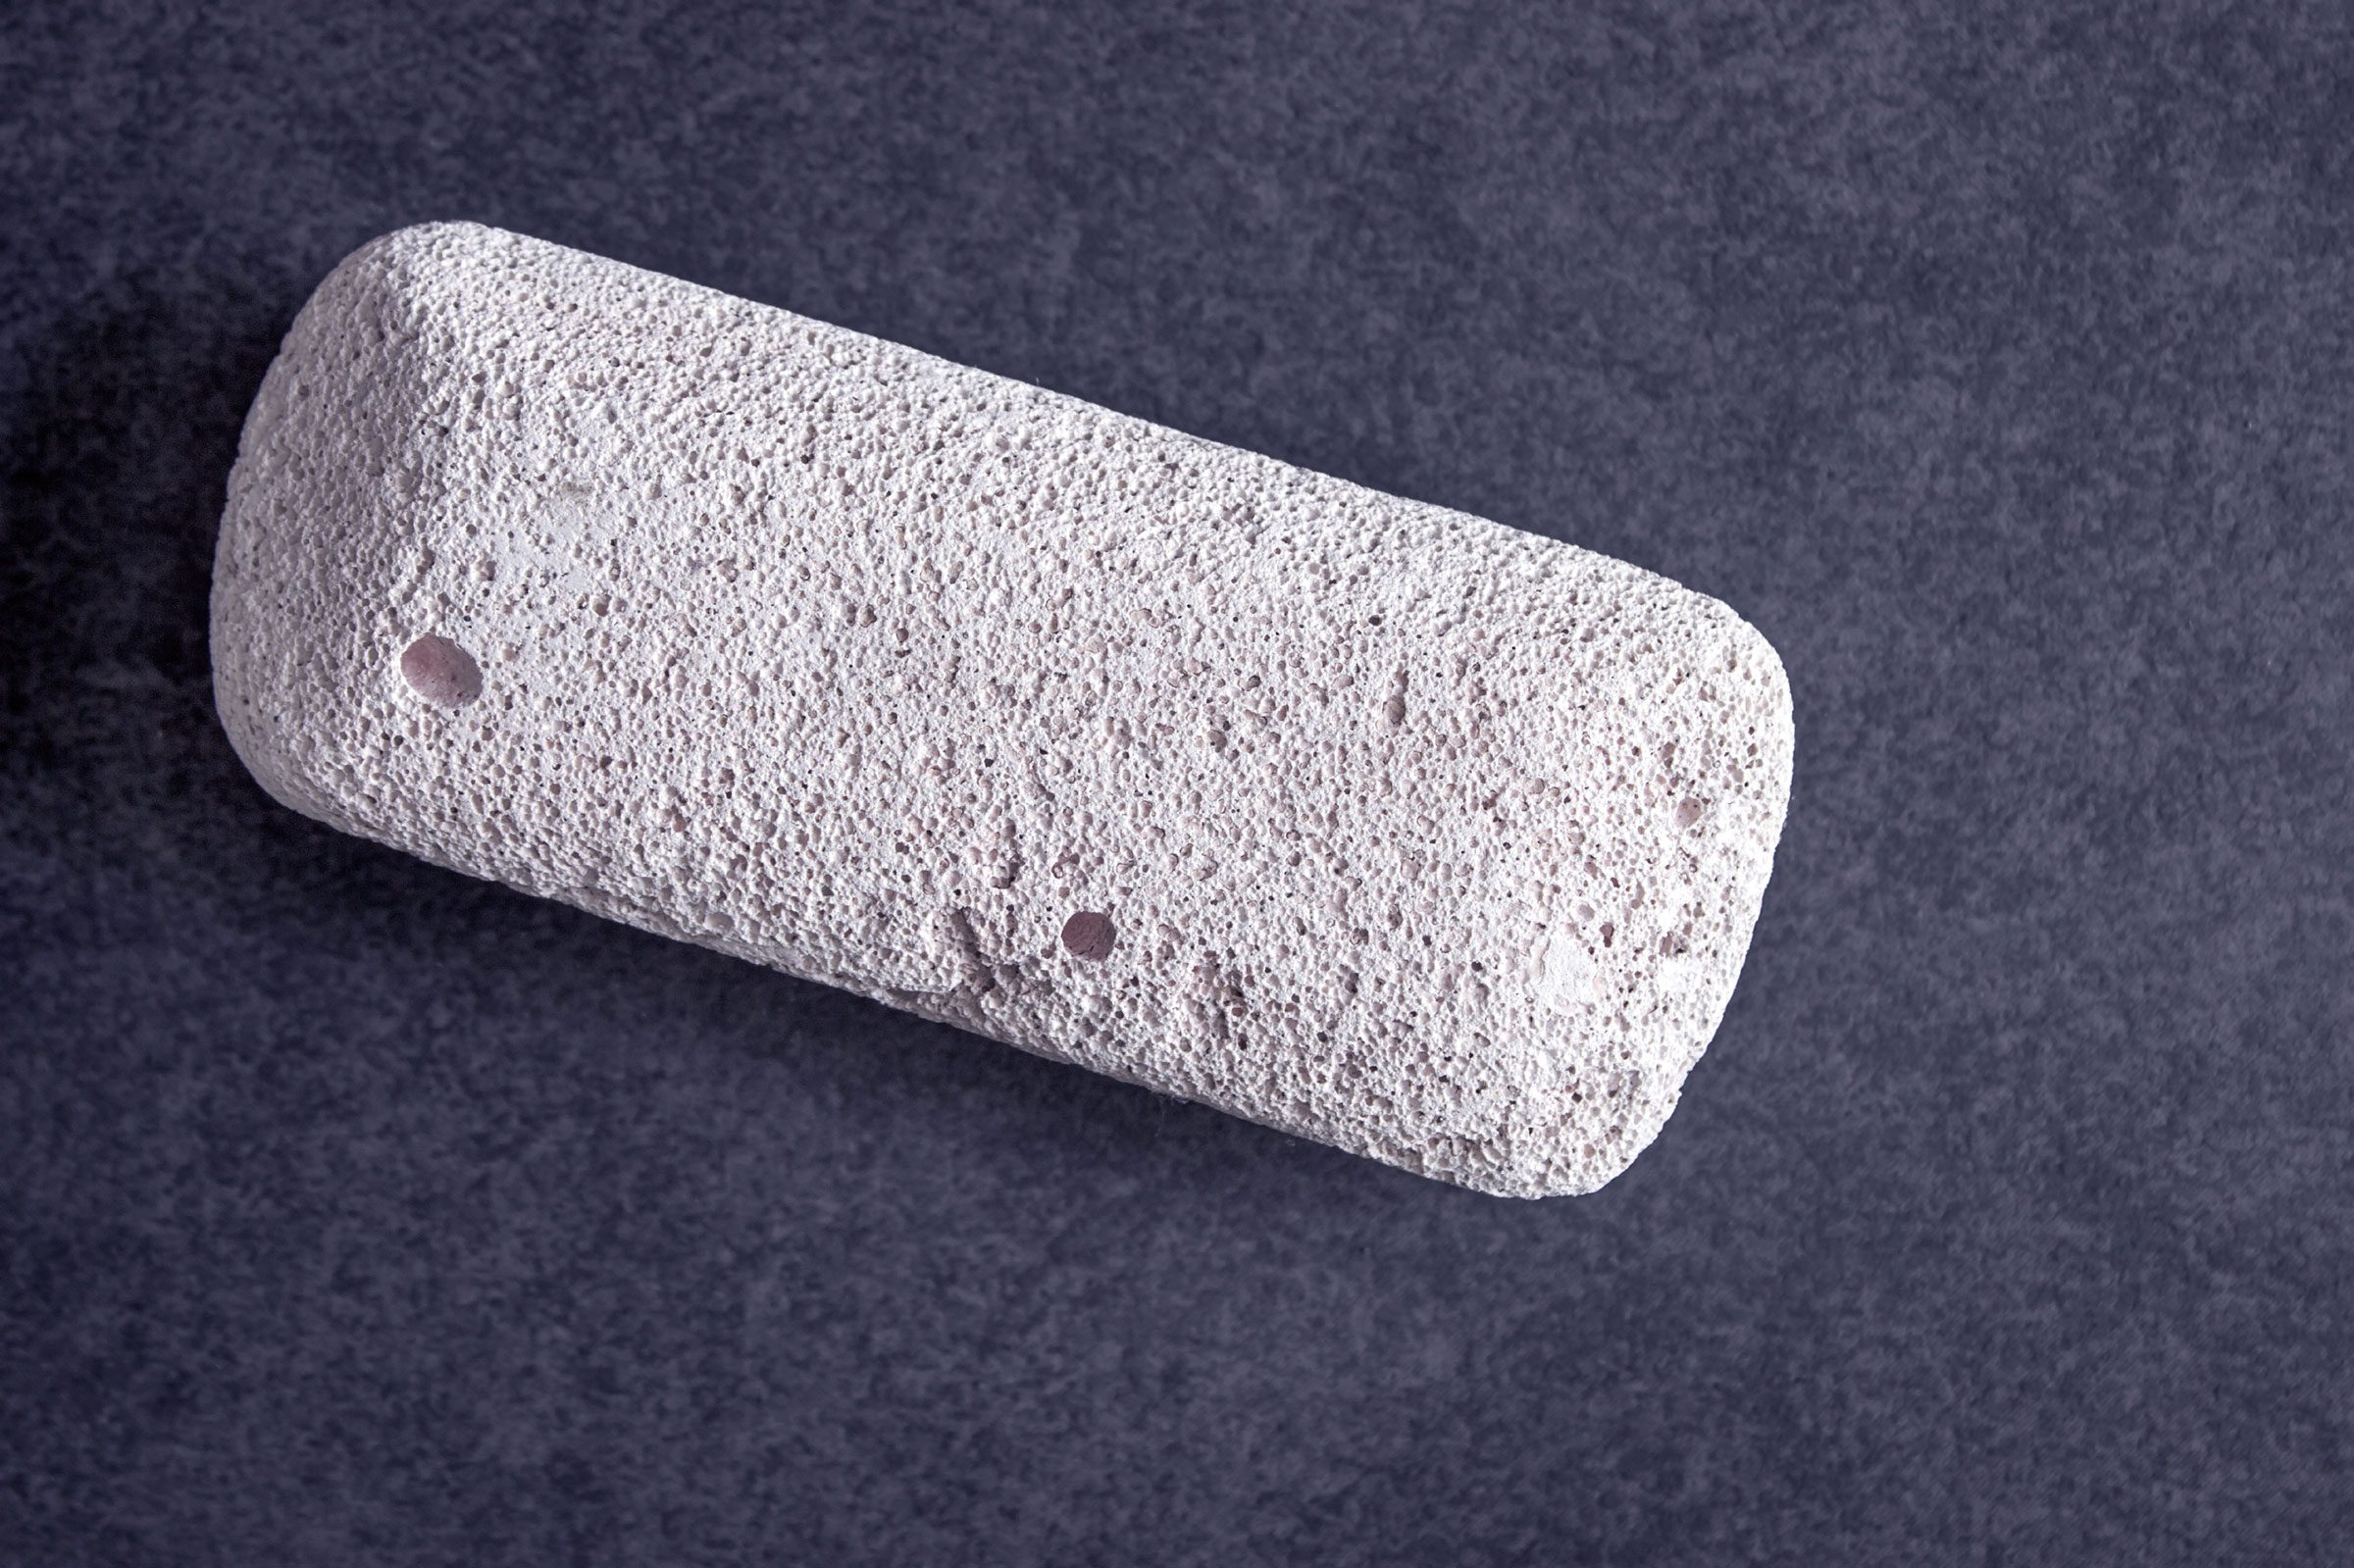 A wet pumice stone will clean a dirty oven faster than any spray-on product.